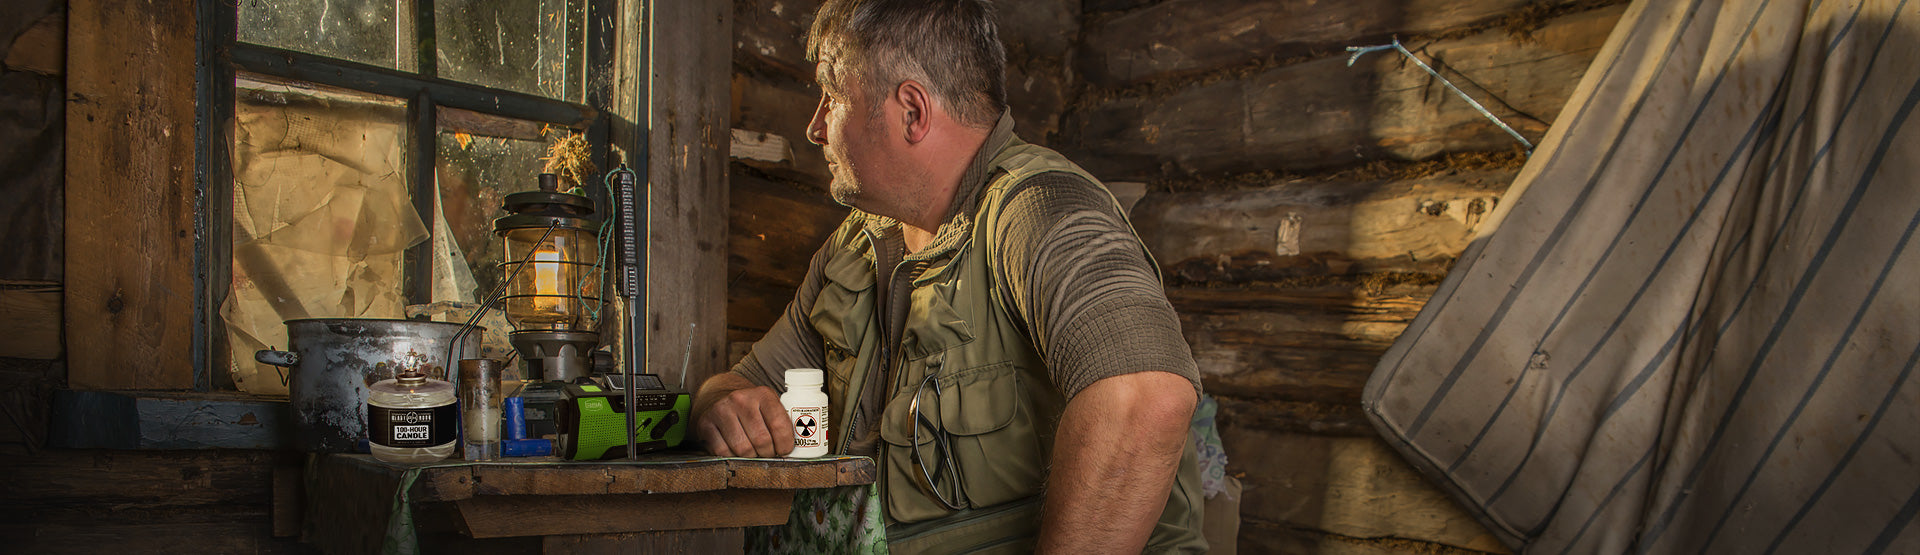 Survival Essentials - a man looks out his window with preparedness in mind.